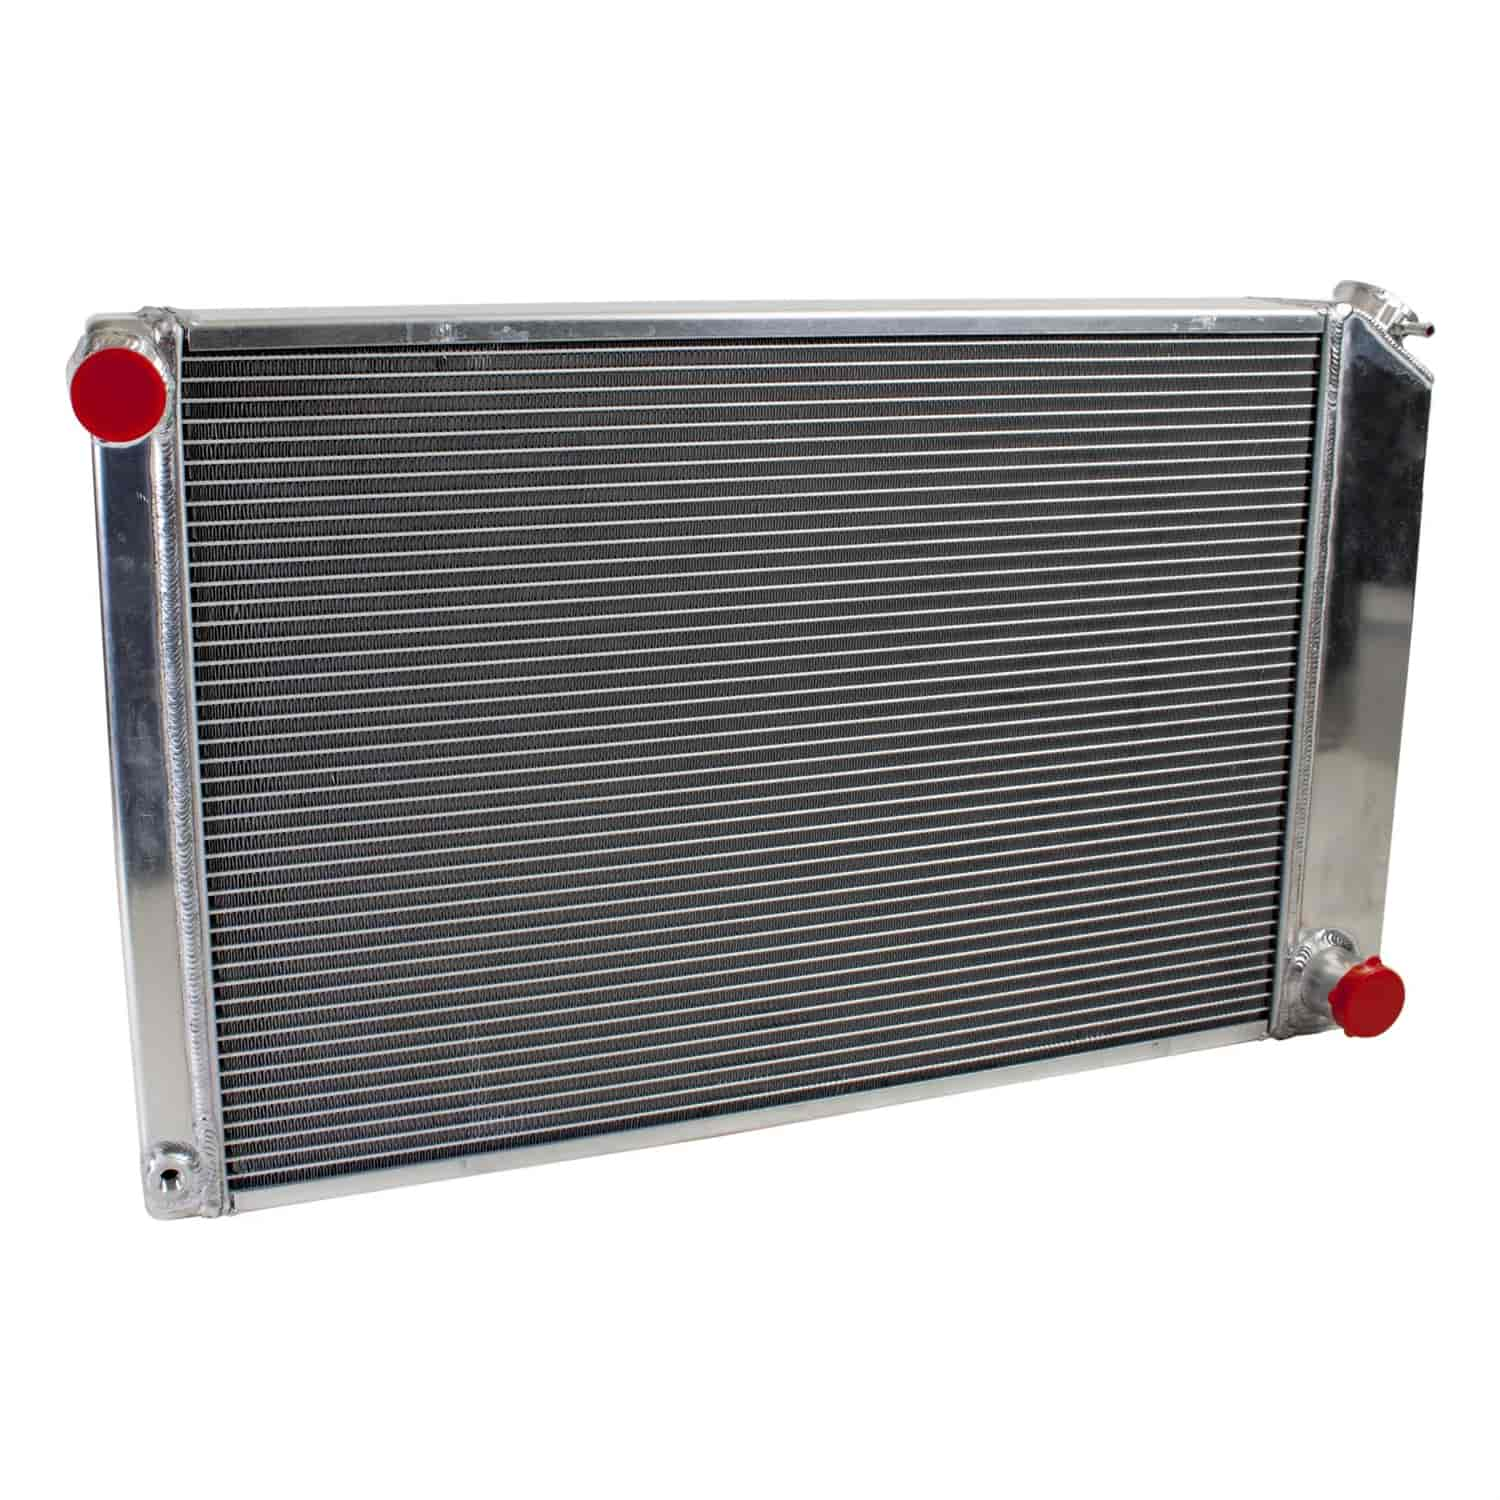 Griffin Radiators 8-00010